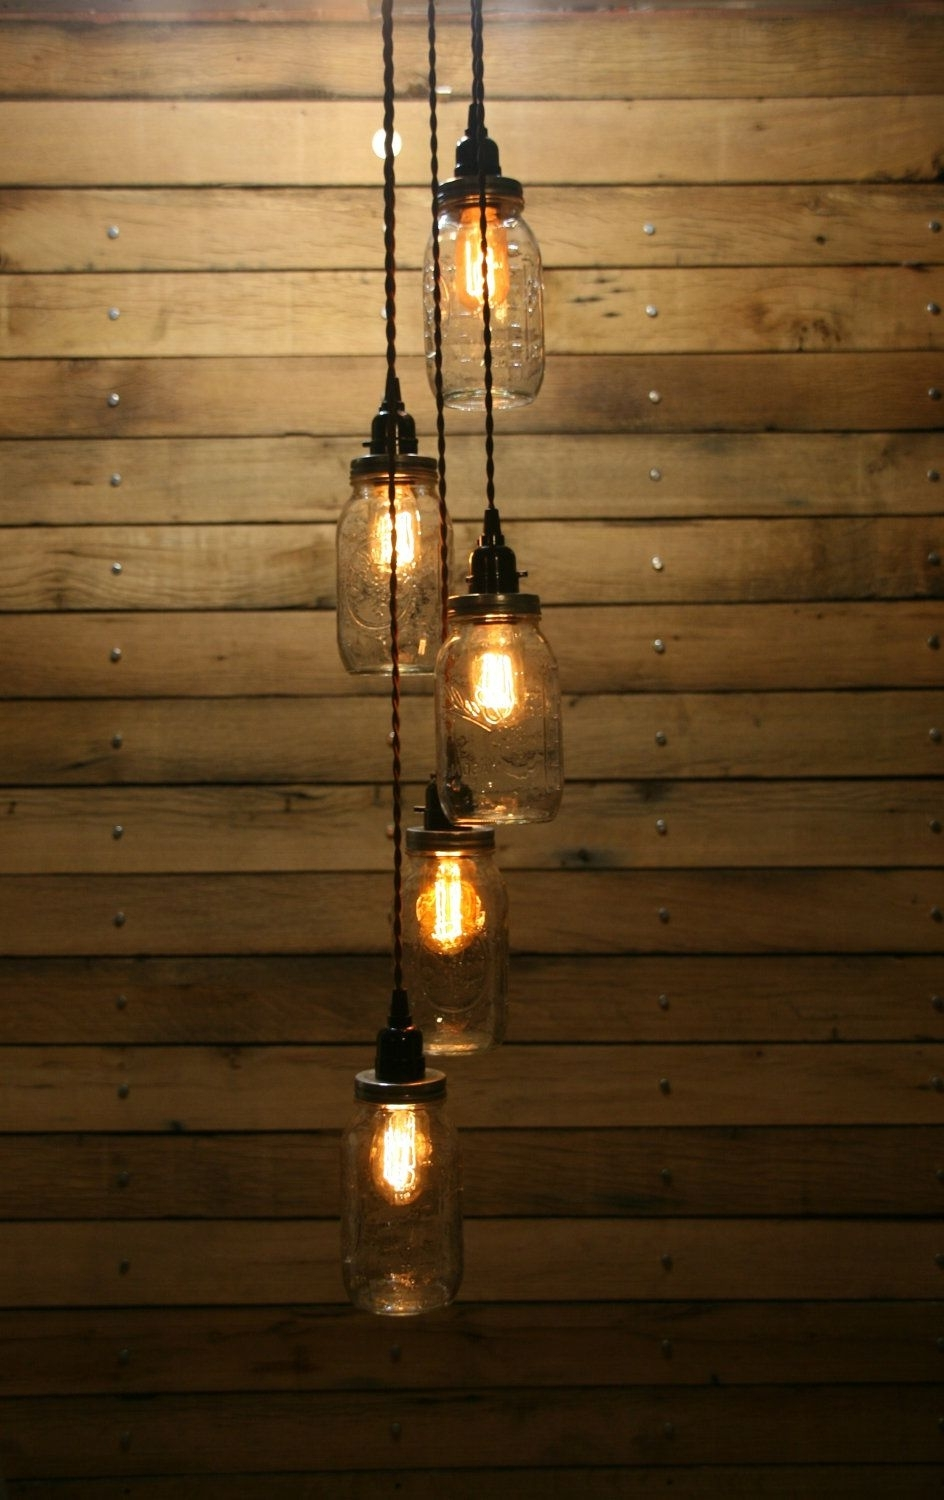 Most Current 5 Jar Pendant Light – Mason Jar Chandelier Light – Staggered Length Within Outdoor Hanging Mason Jar Lights (View 7 of 20)